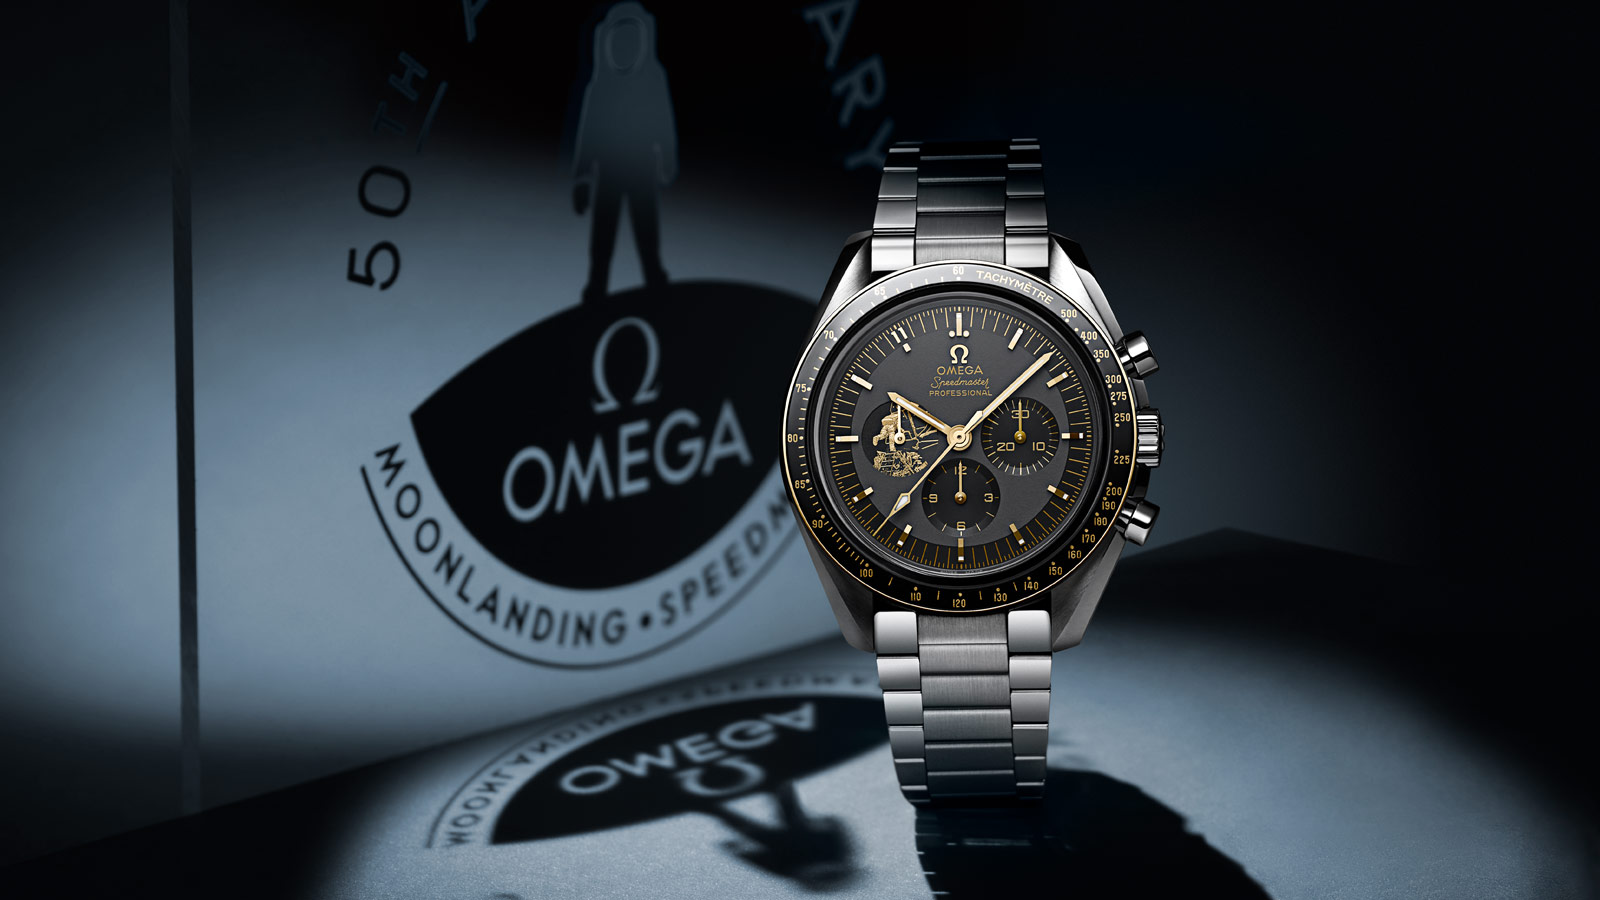 The rolex Oyster Perpetual Yacht-master Price